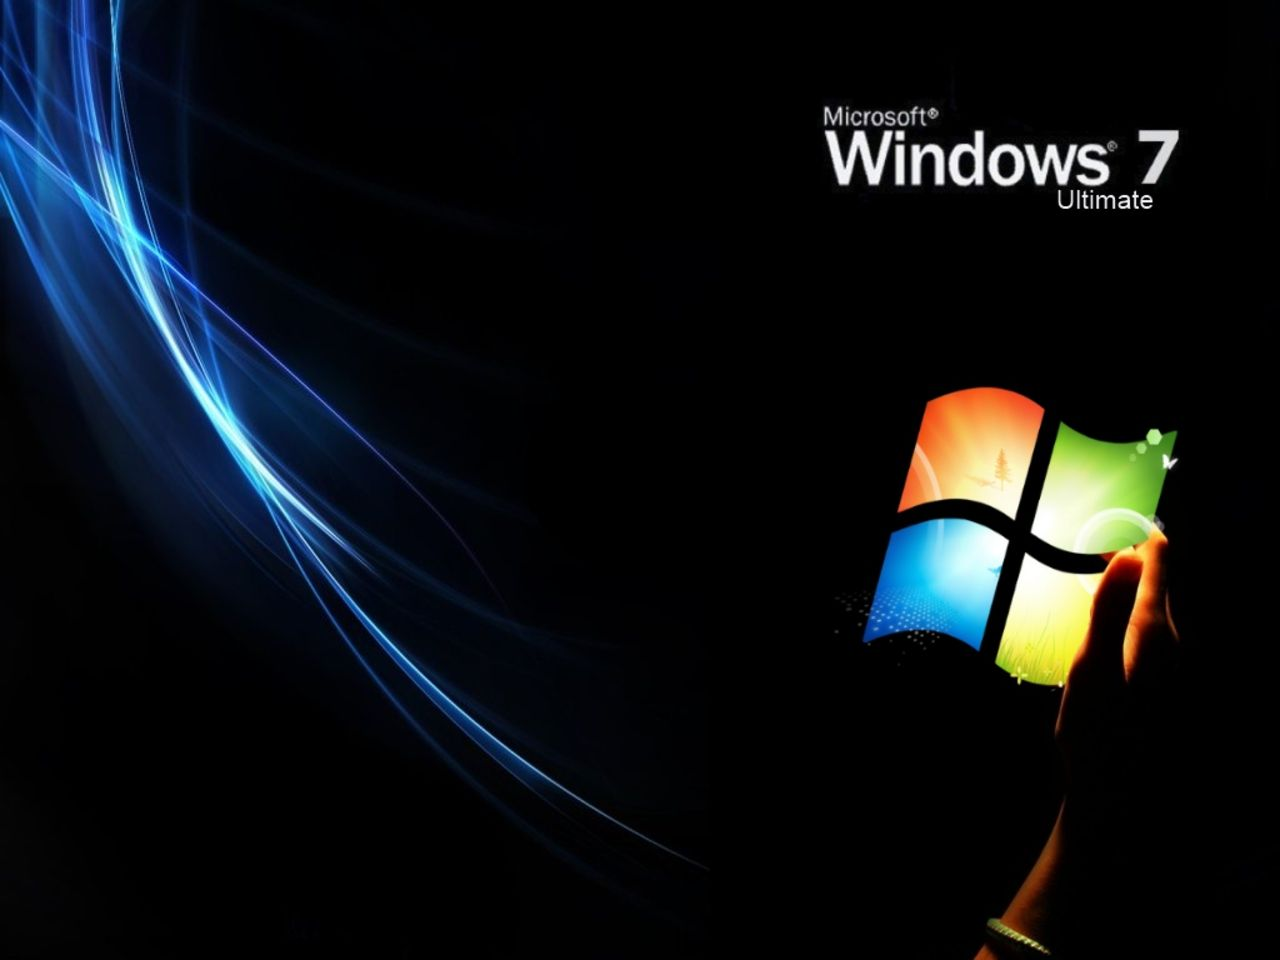 windows 7 ultimate wallpaper free download - sf wallpaper